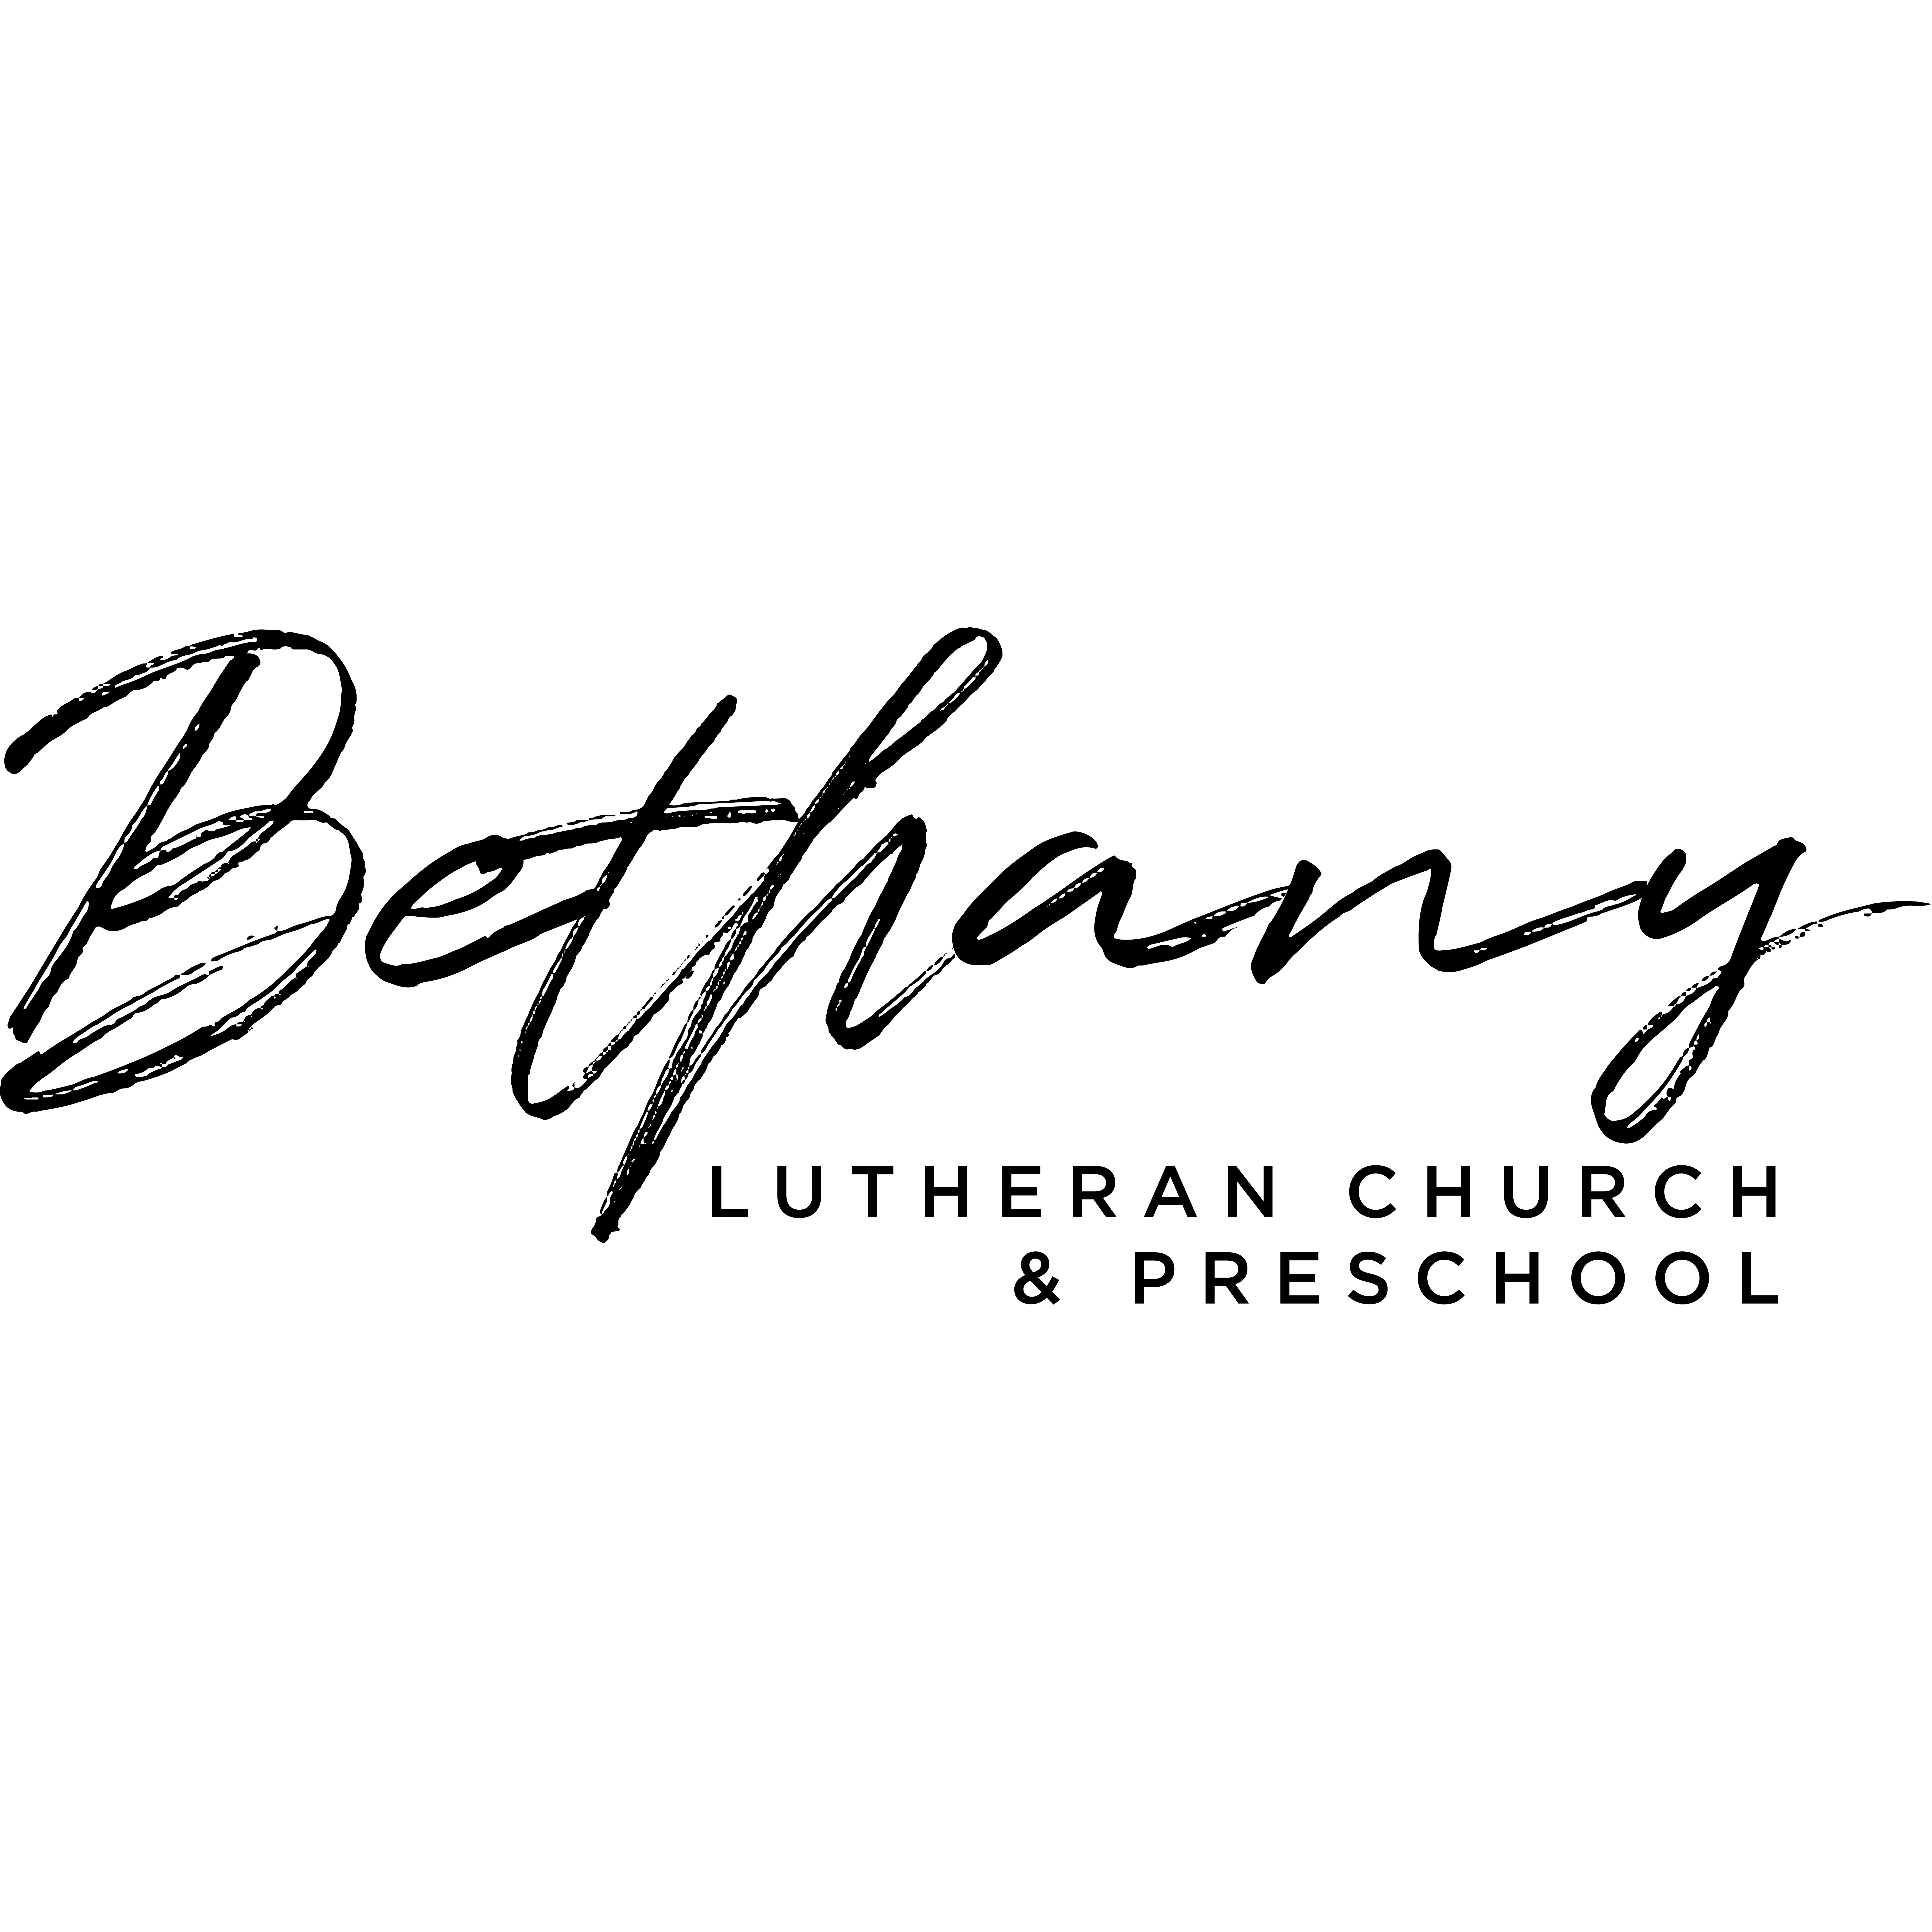 Bethany Lutheran Church & Preschool